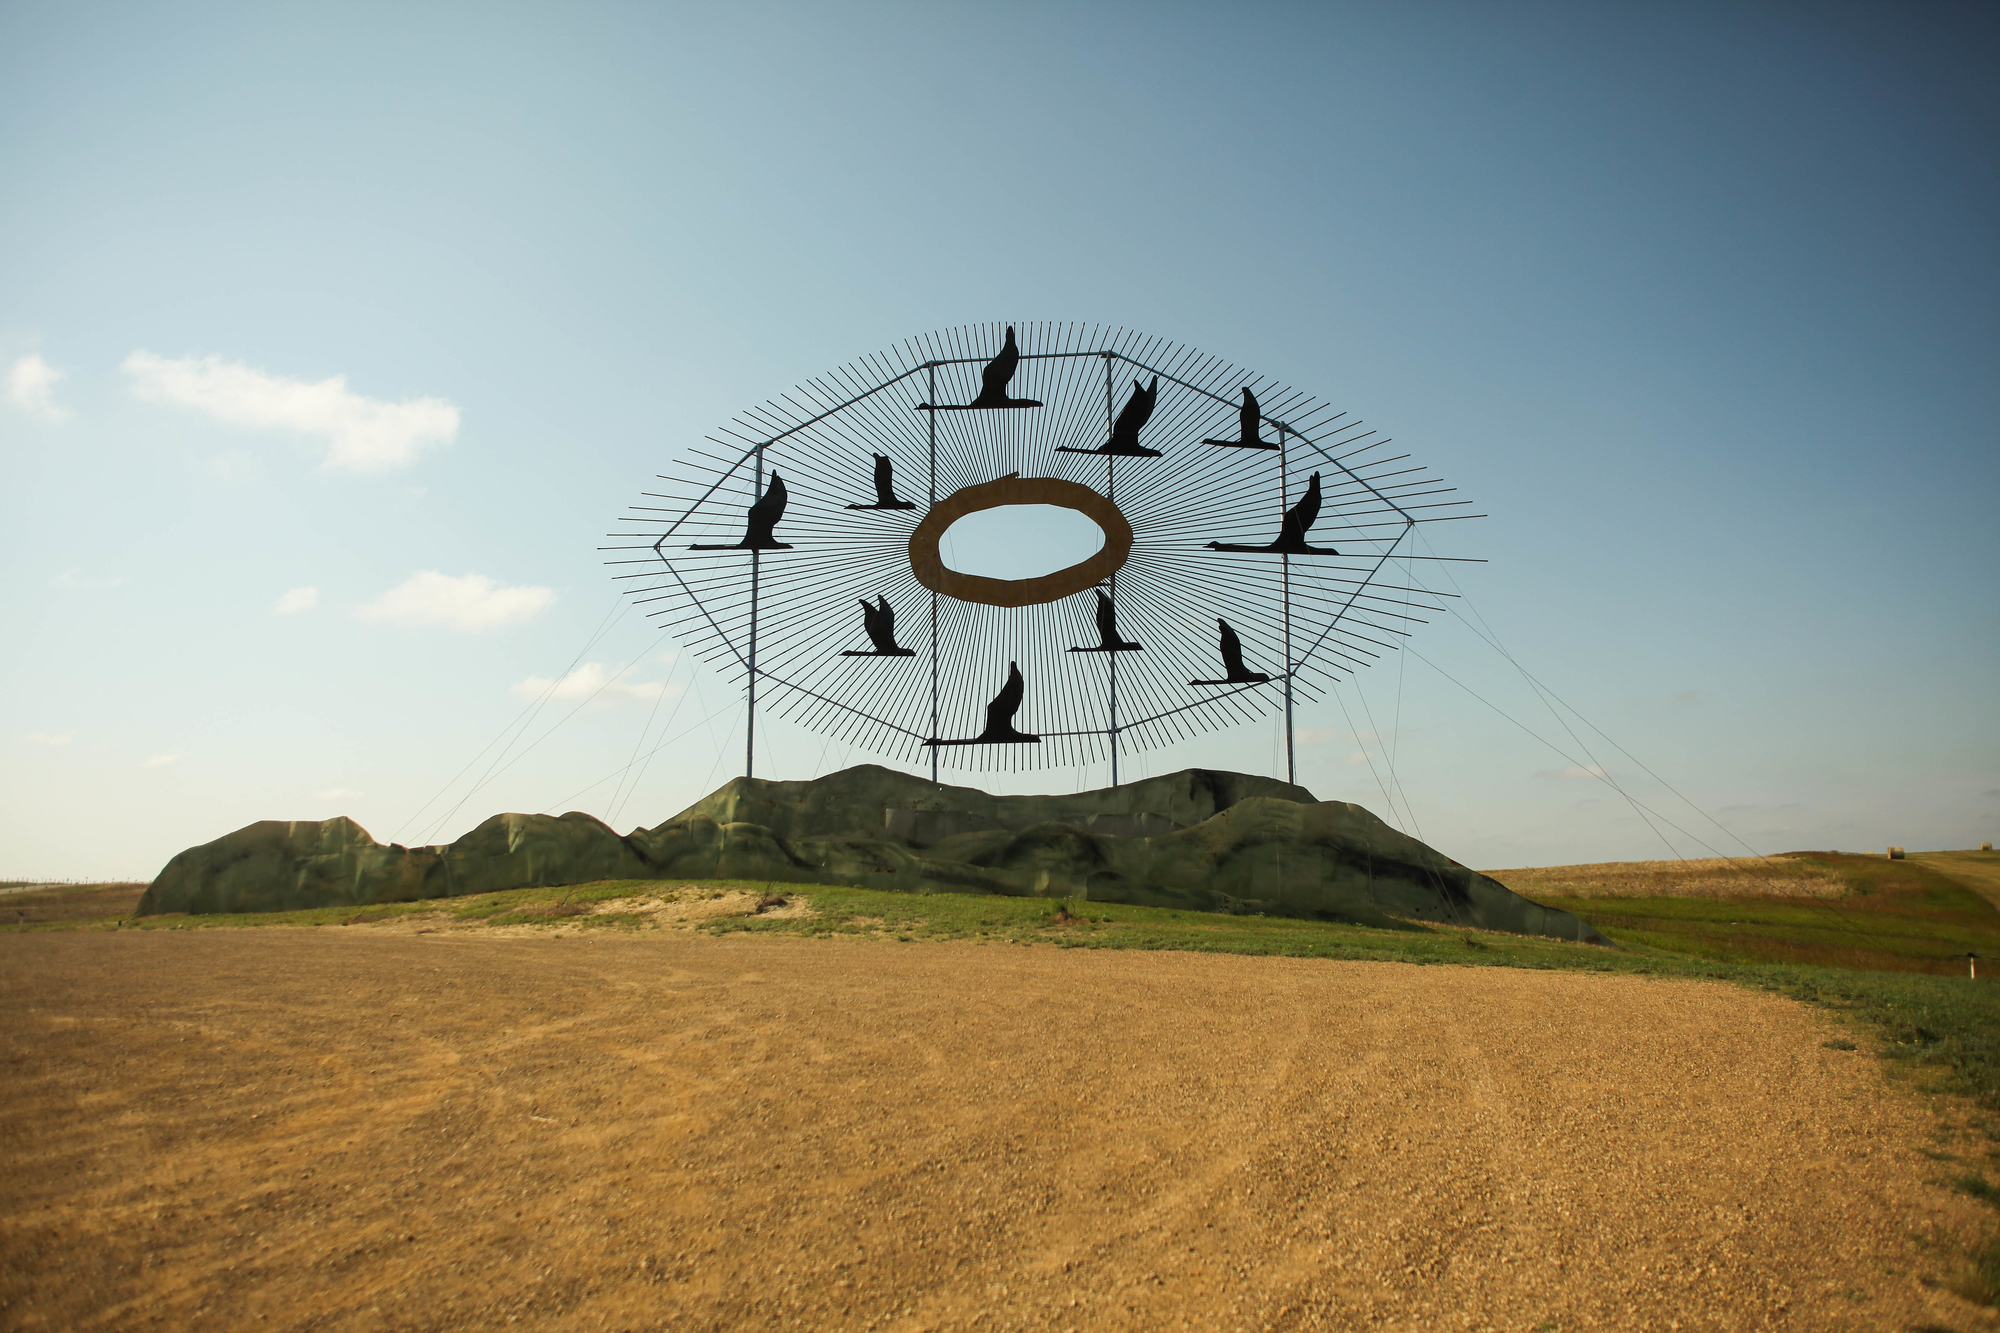 Geese in Flight is the largest statue on the Enchanted Highway, standing beside I-94 at the Gladston exit. (Credit North Dakota Tourism)